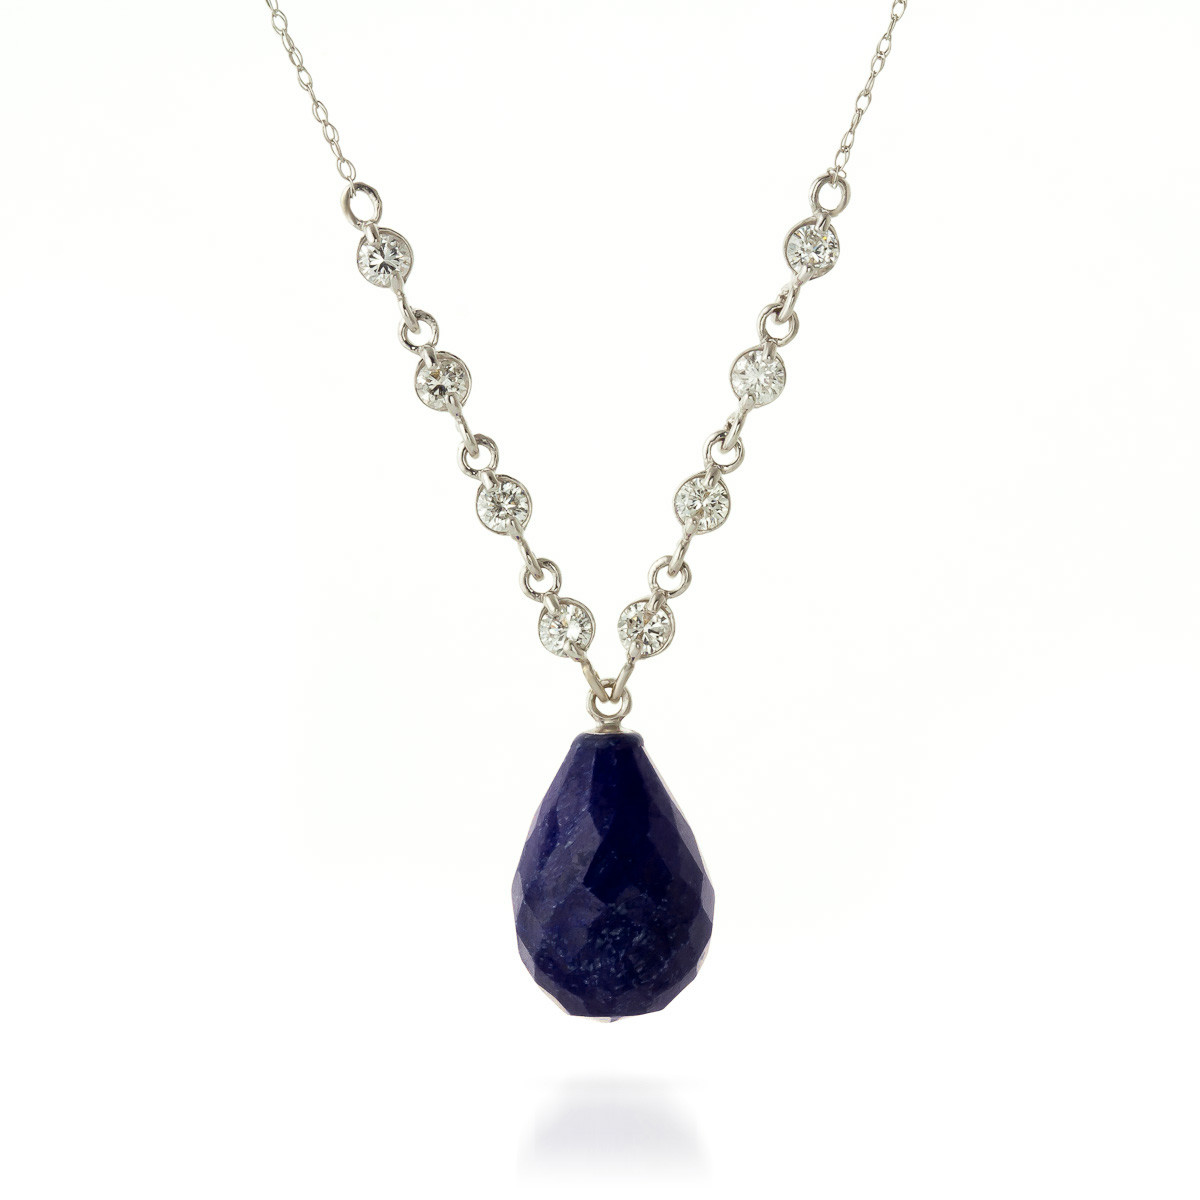 Briolette cut sapphire pendant necklace 156 ctw in 9ct white gold briolette cut sapphire pendant necklace 156 ctw in 9ct white gold aloadofball Choice Image